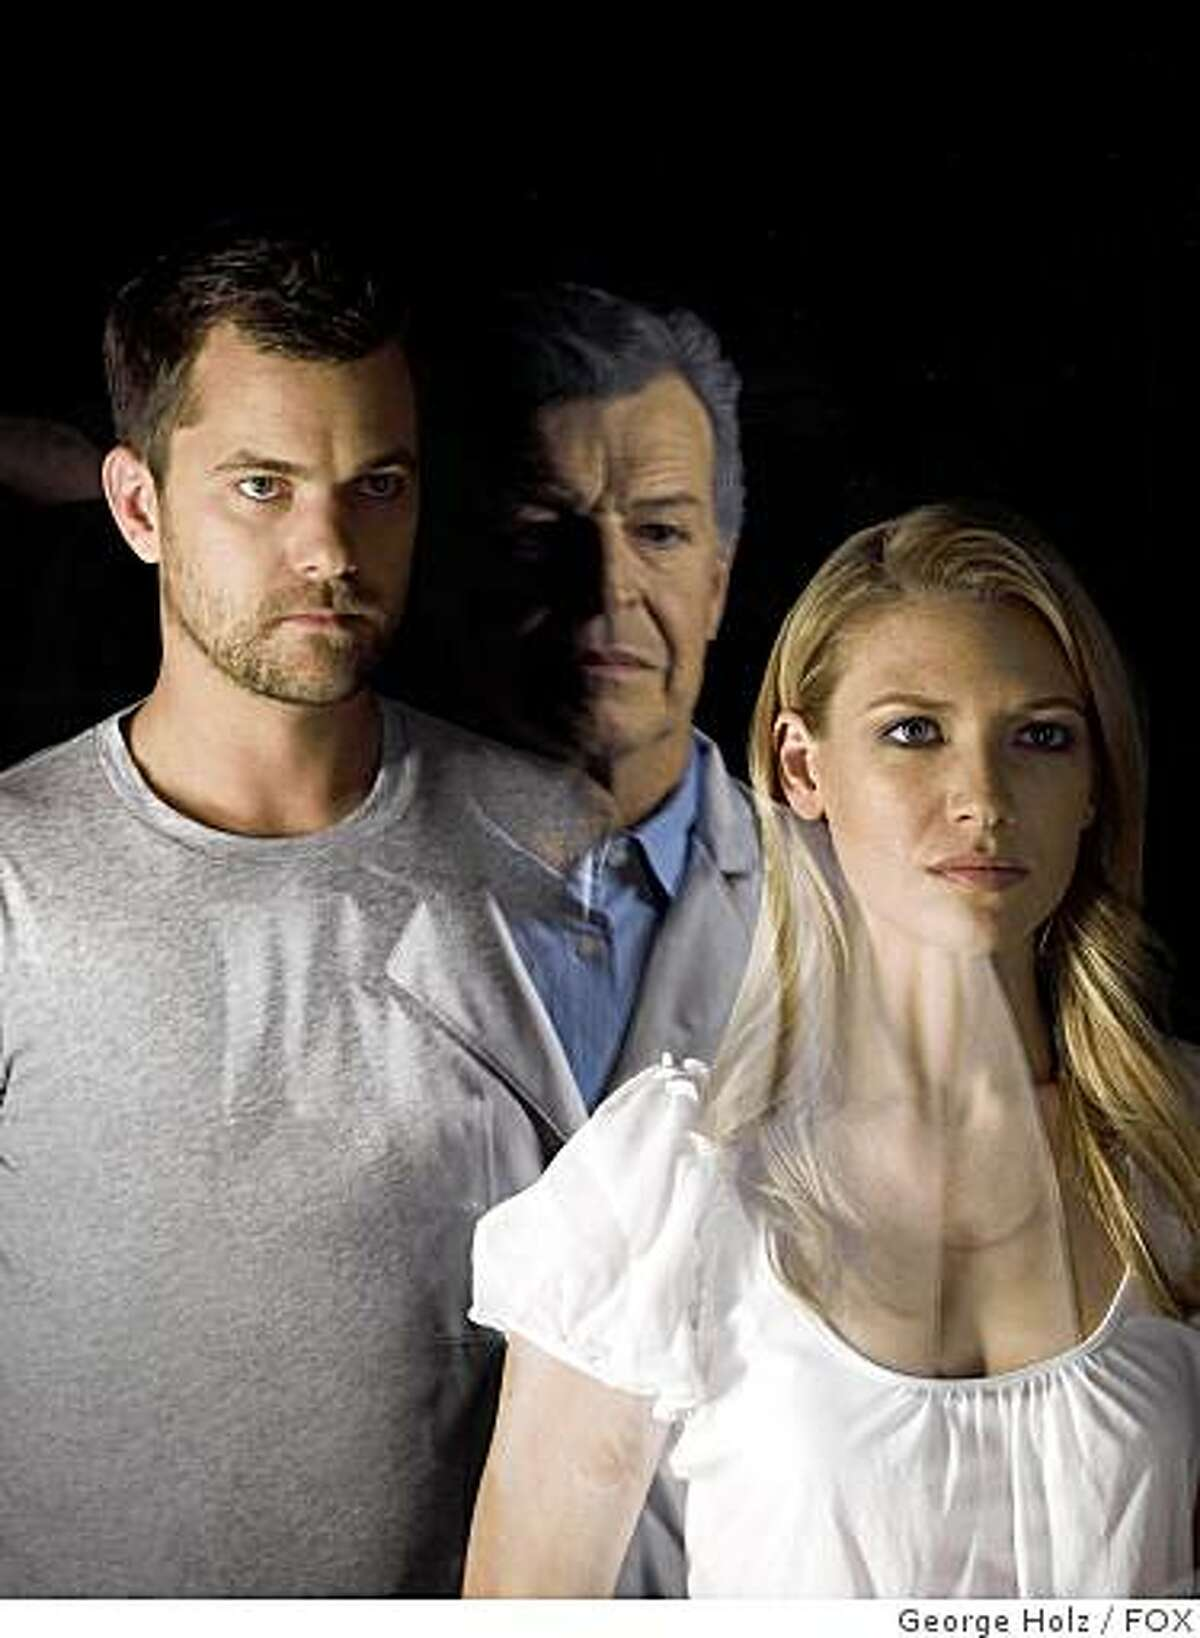 Joshua Jackson, John Noble and Anna Torv stars in FRINGE premiering Tuesday, Sept. 9 on FOX.